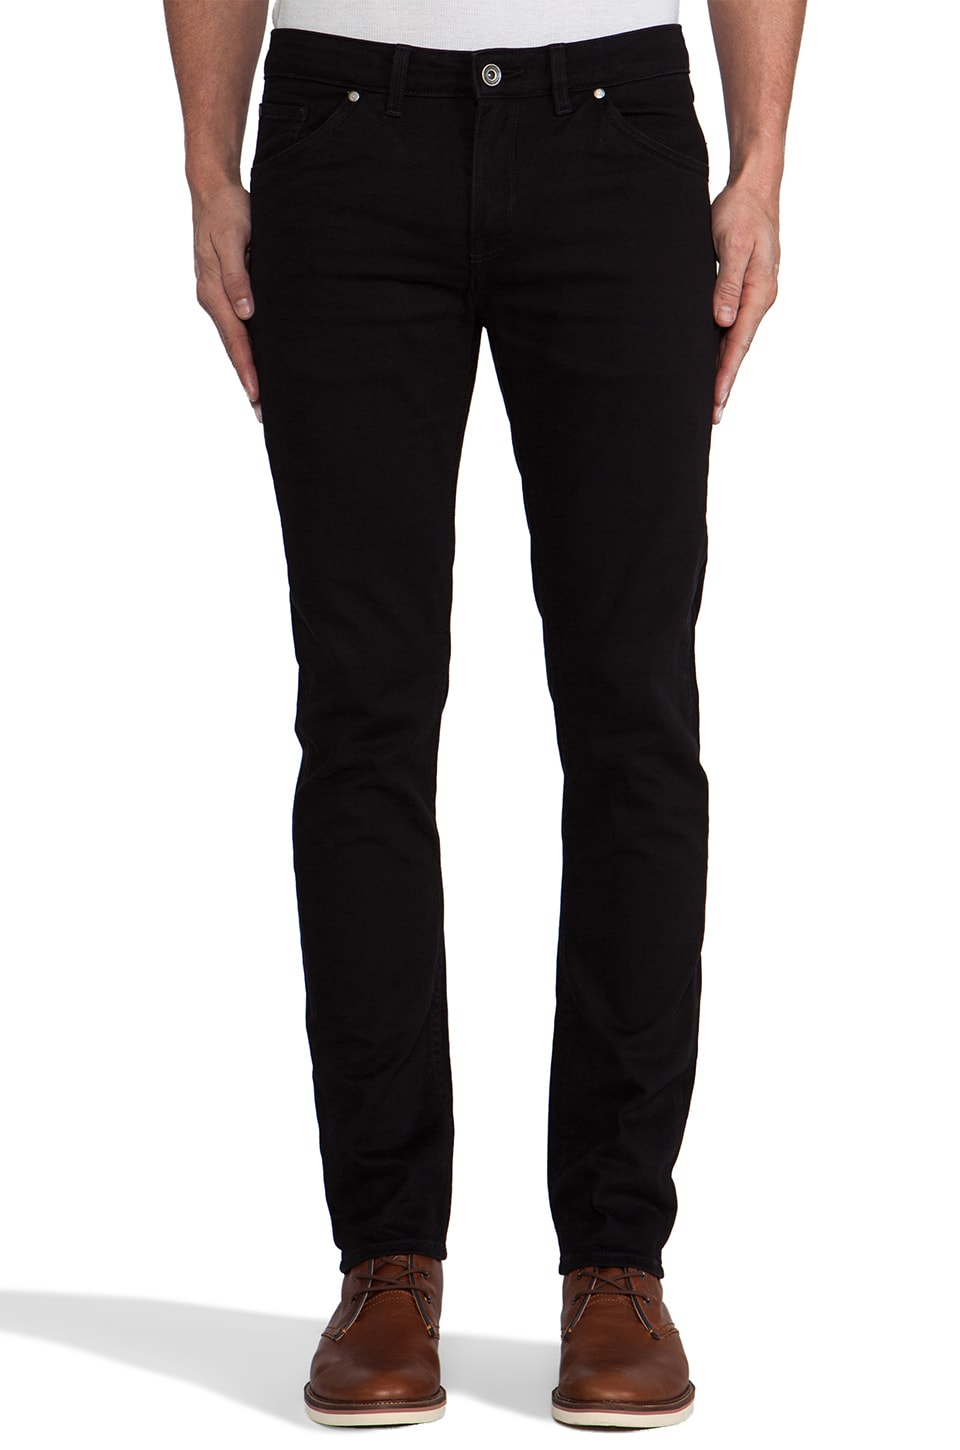 FARAH VINTAGE The Drake Stretch Pant in Black